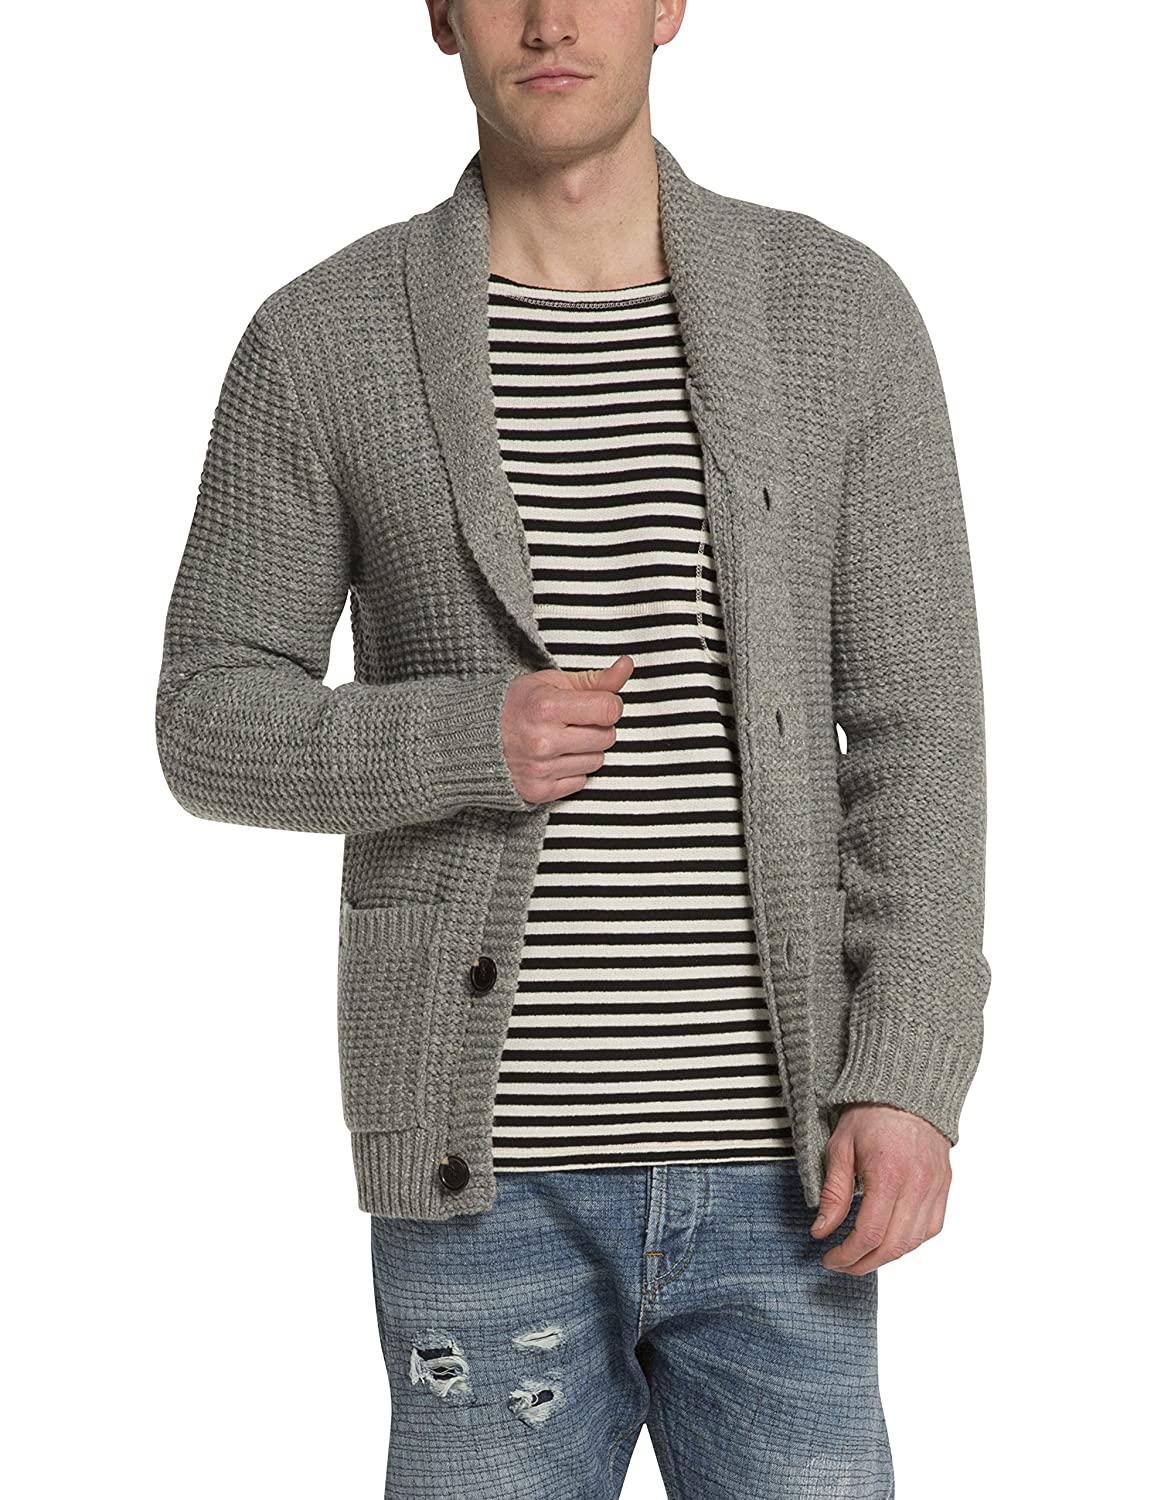 Scotch & Soda Herren Strickjacke 15060660391